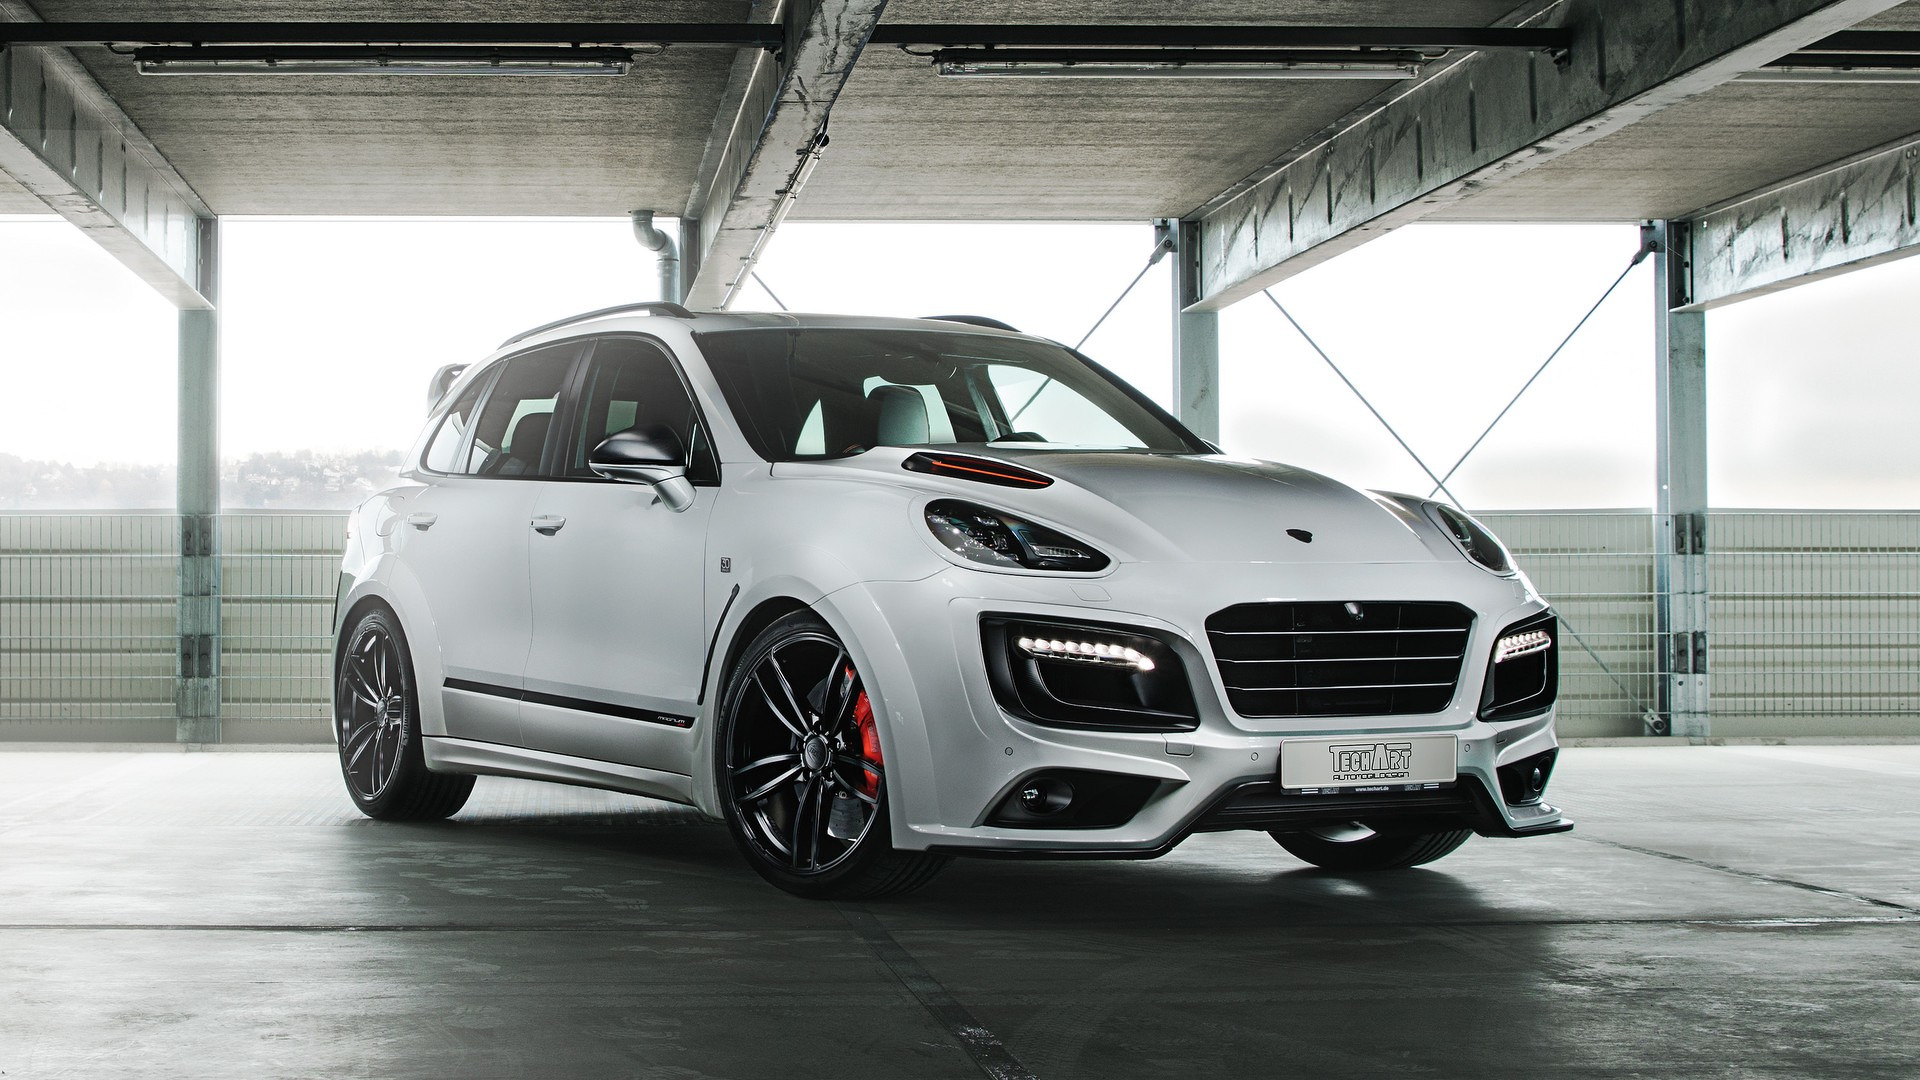 720 hp porsche cayenne turbo s marks techart 39 s 30th anniversary. Black Bedroom Furniture Sets. Home Design Ideas